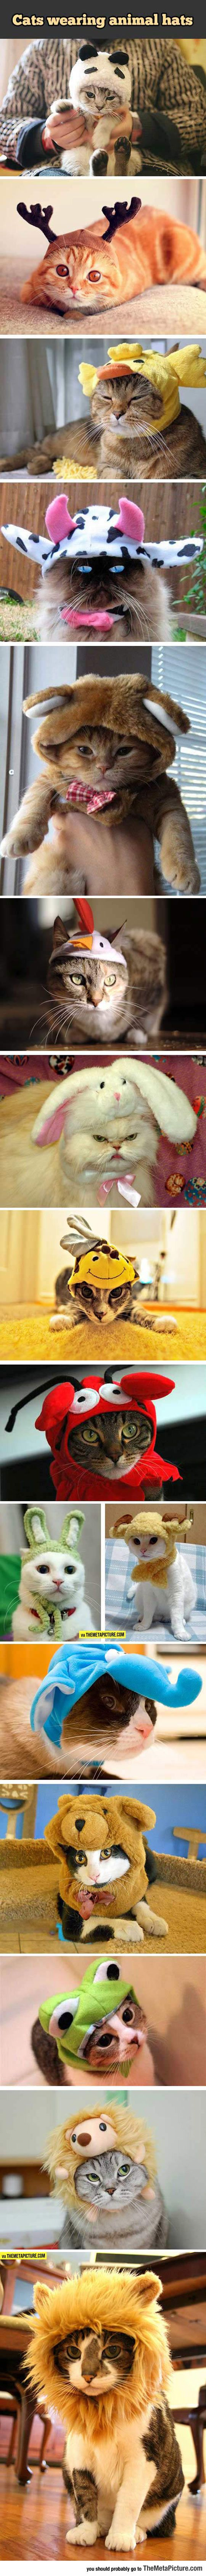 Felines Wearing Animal Hats / Your death wearing animal hats . . . same thing